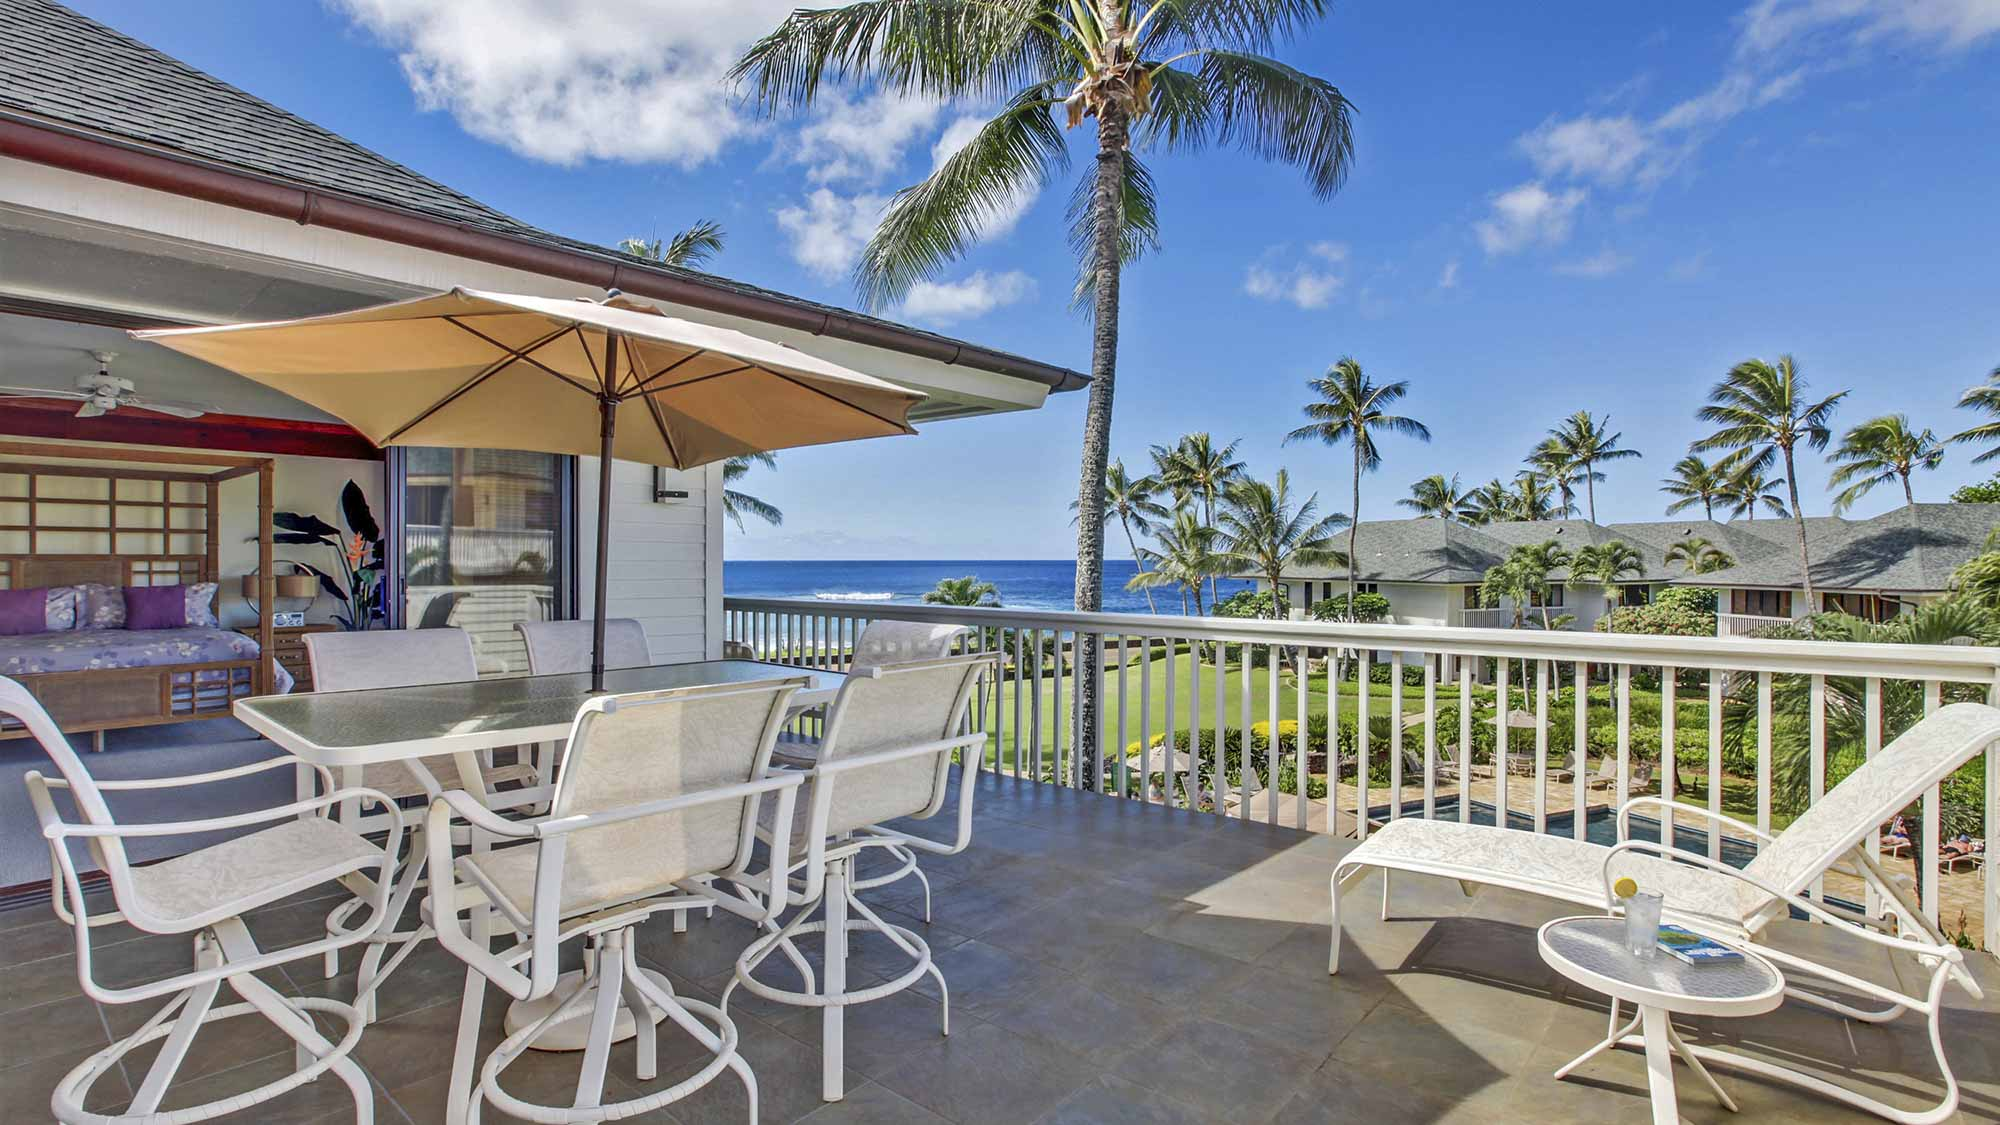 Poipu Kapili Resort #43 - Ocean View Penthouse Dining & Lounging Lanai View - Parrish Kauai